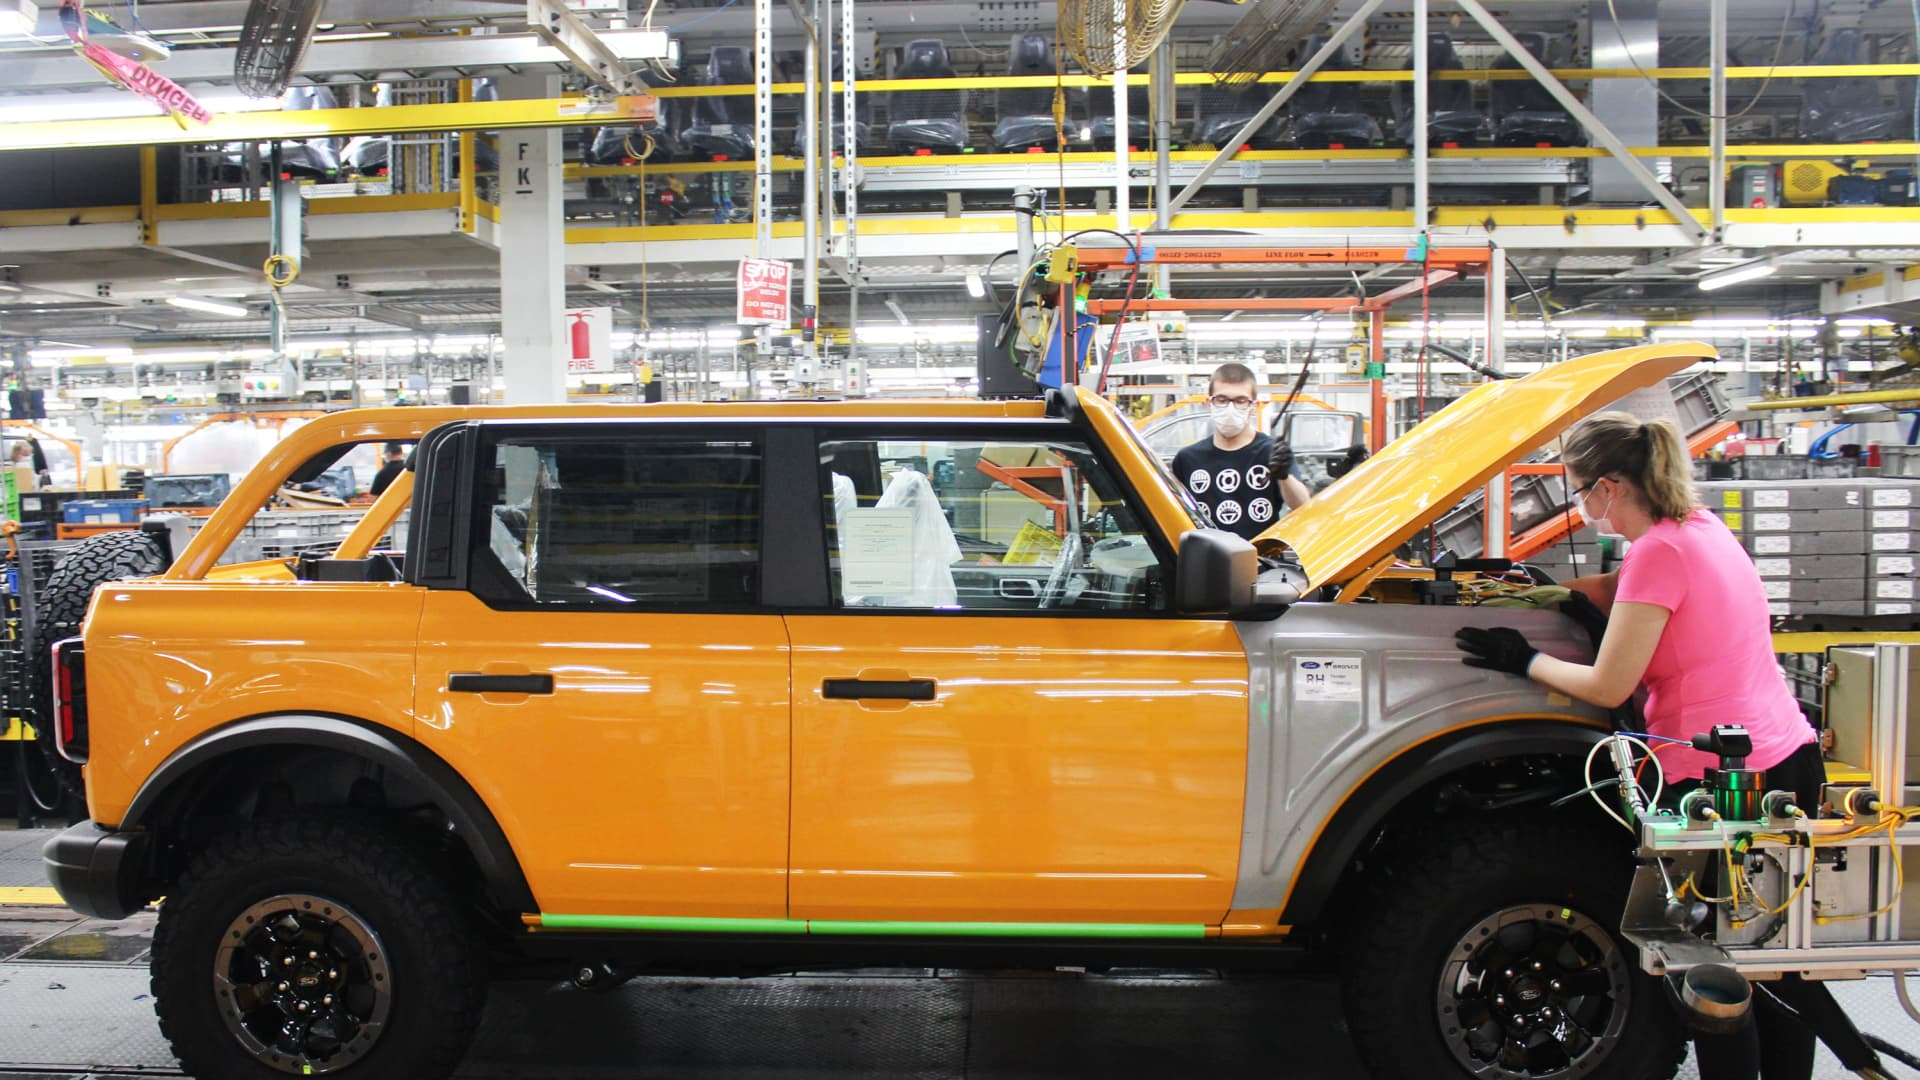 Bronco SUVs in production at Ford's Michigan Assembly plant, June 14, 2021.